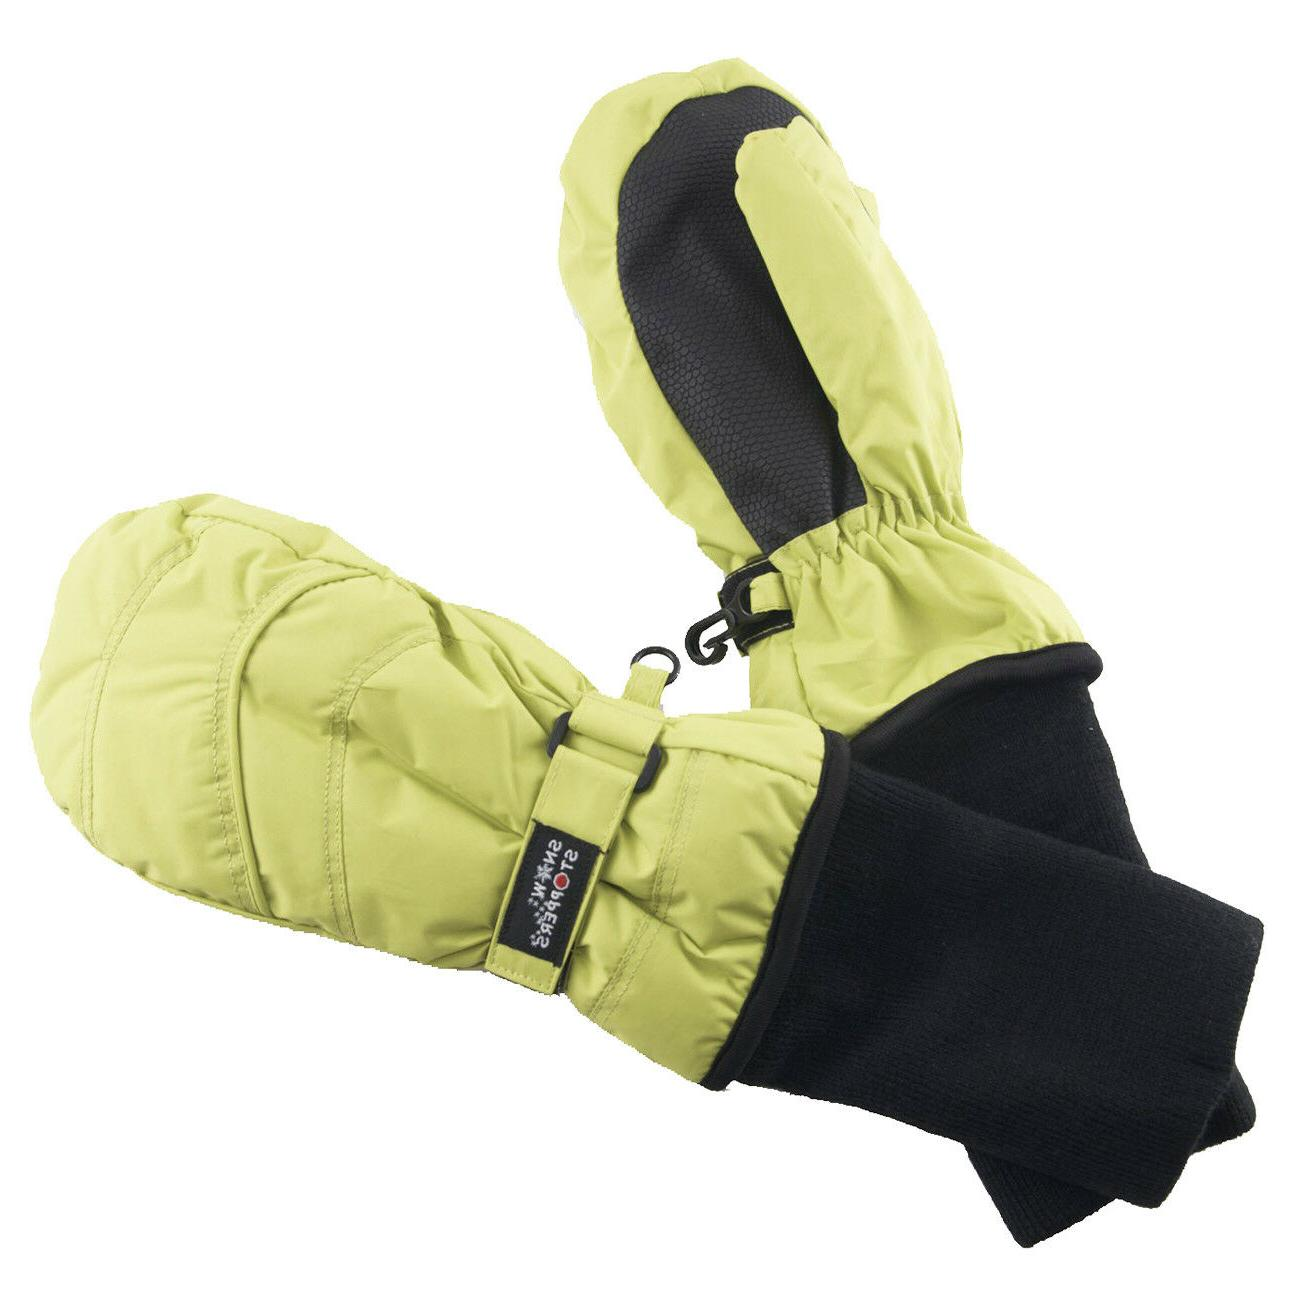 SnowStoppers Extra-Long Cuff Nylon 6 months 12 years